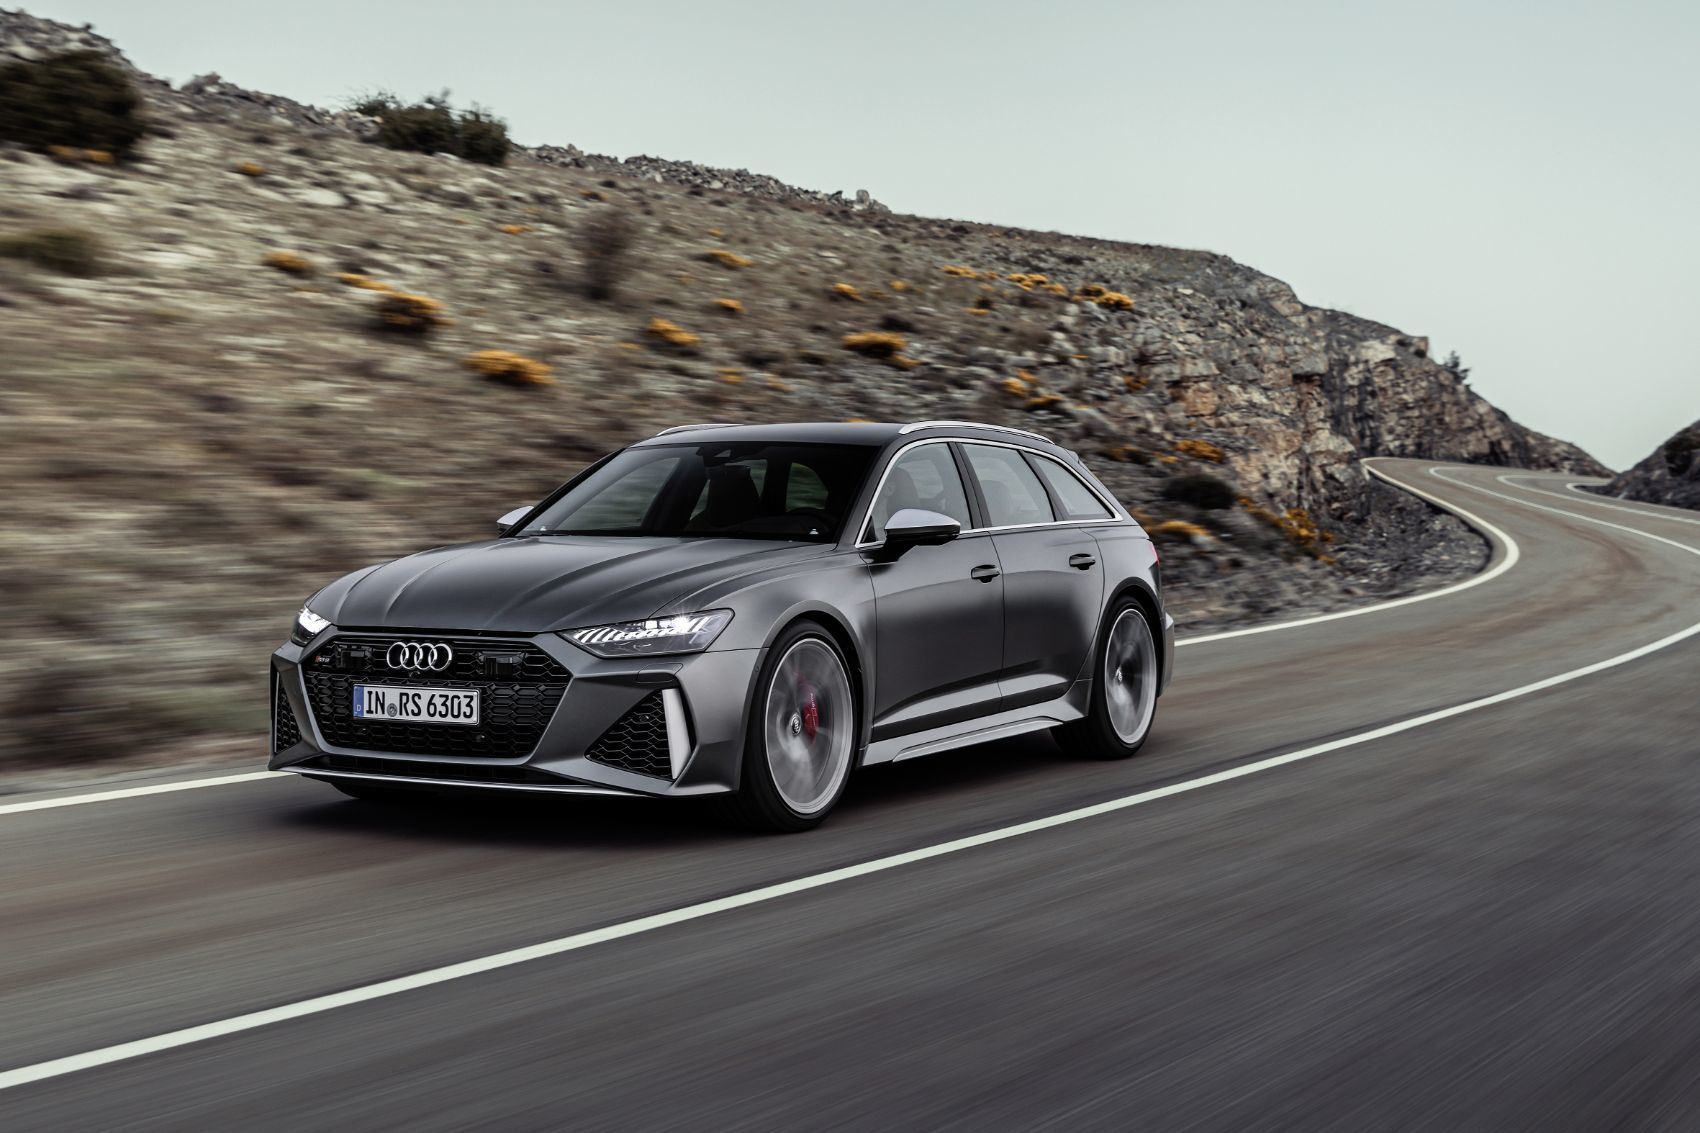 Audi RS 6 Avant: Powerful Wagon On Its Way To The USA